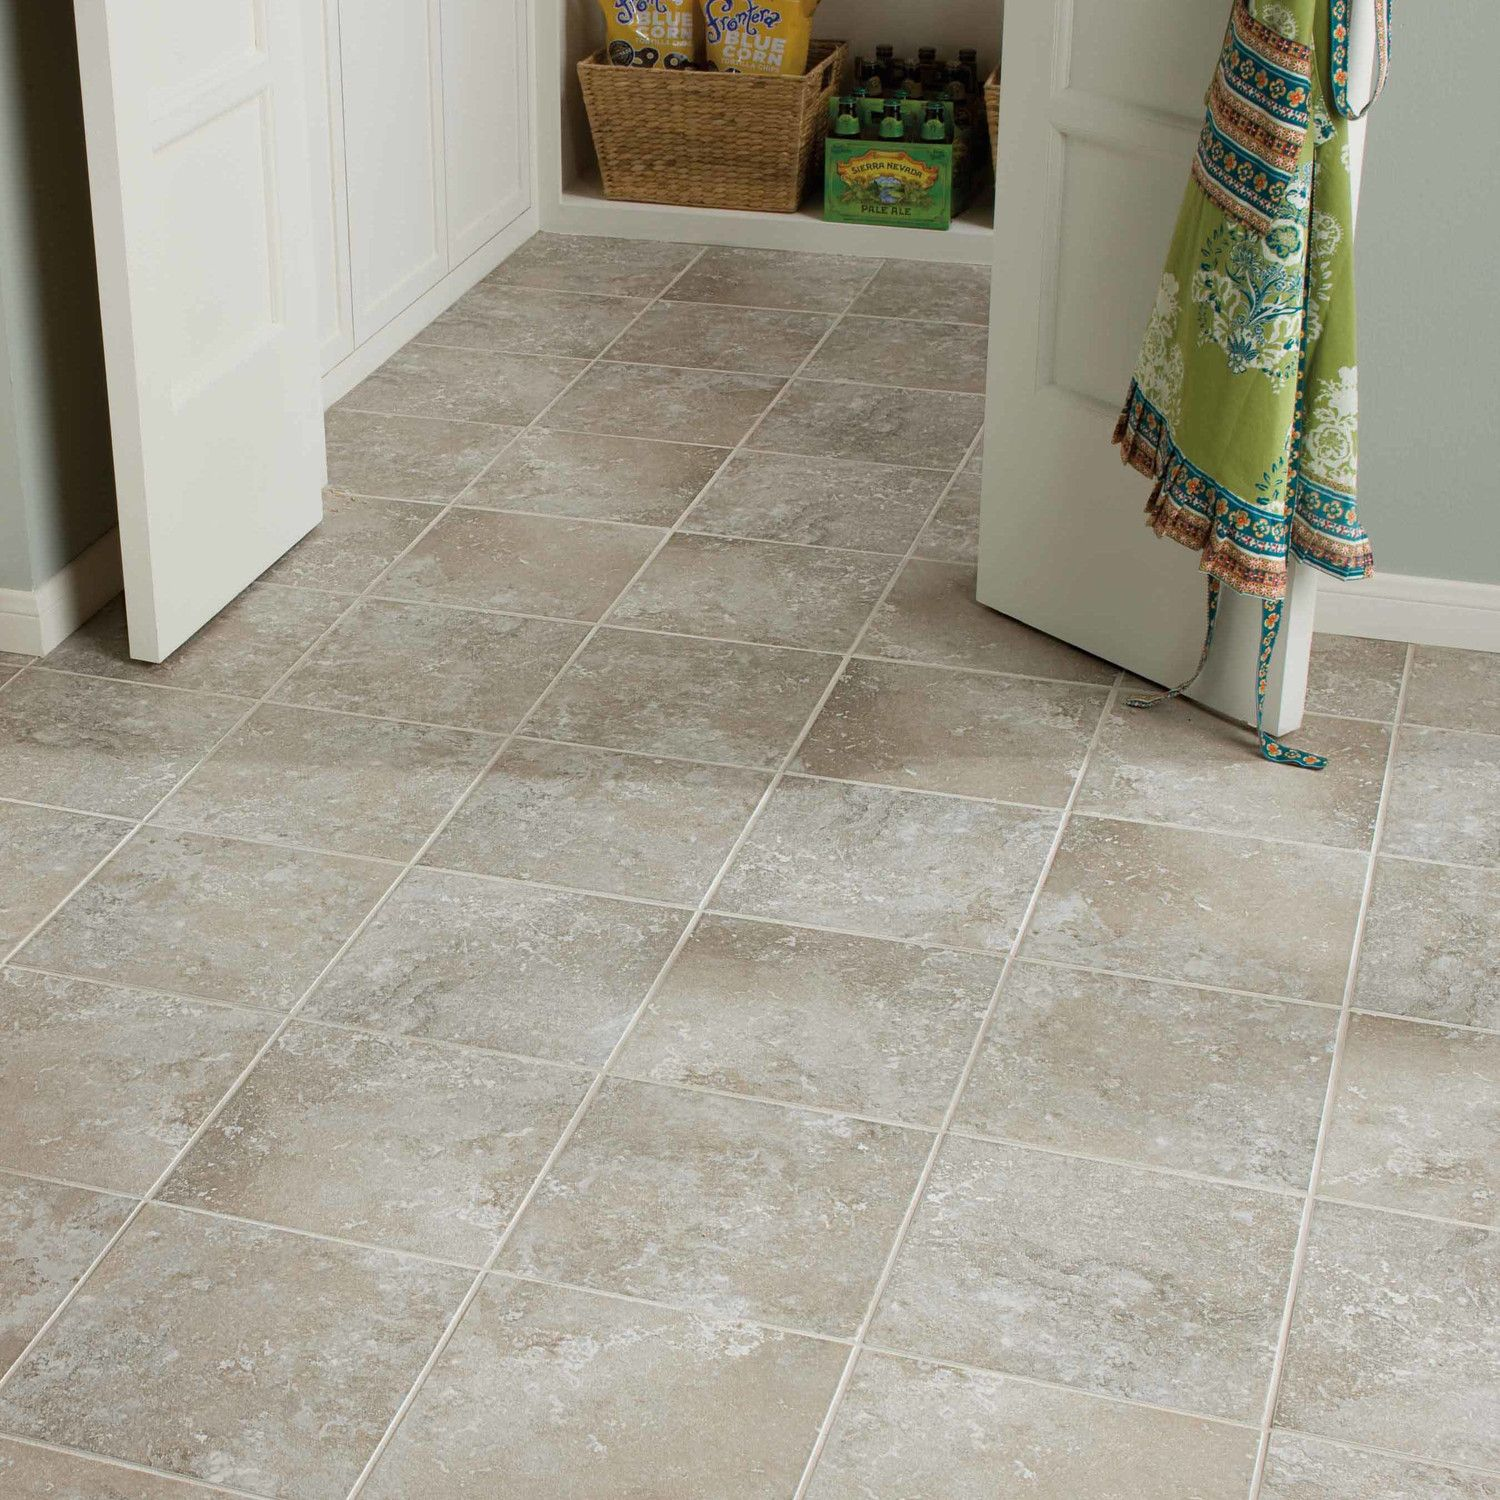 Daltile sandalo ceramic glazed field tile in castillian gray warm tile dailygadgetfo Image collections